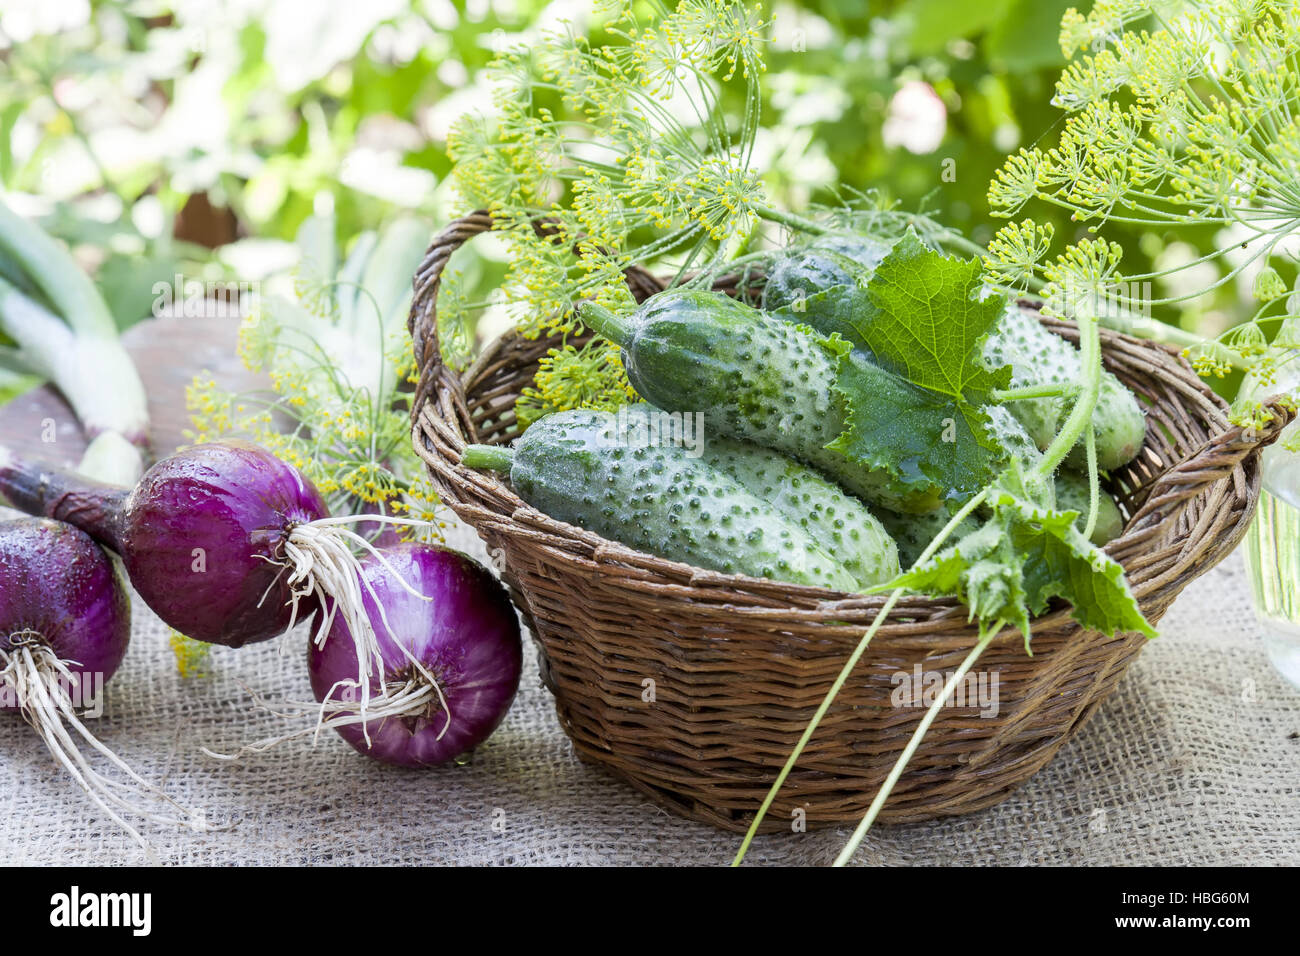 Fresh cucumbers in wicker basket with dill - Stock Image